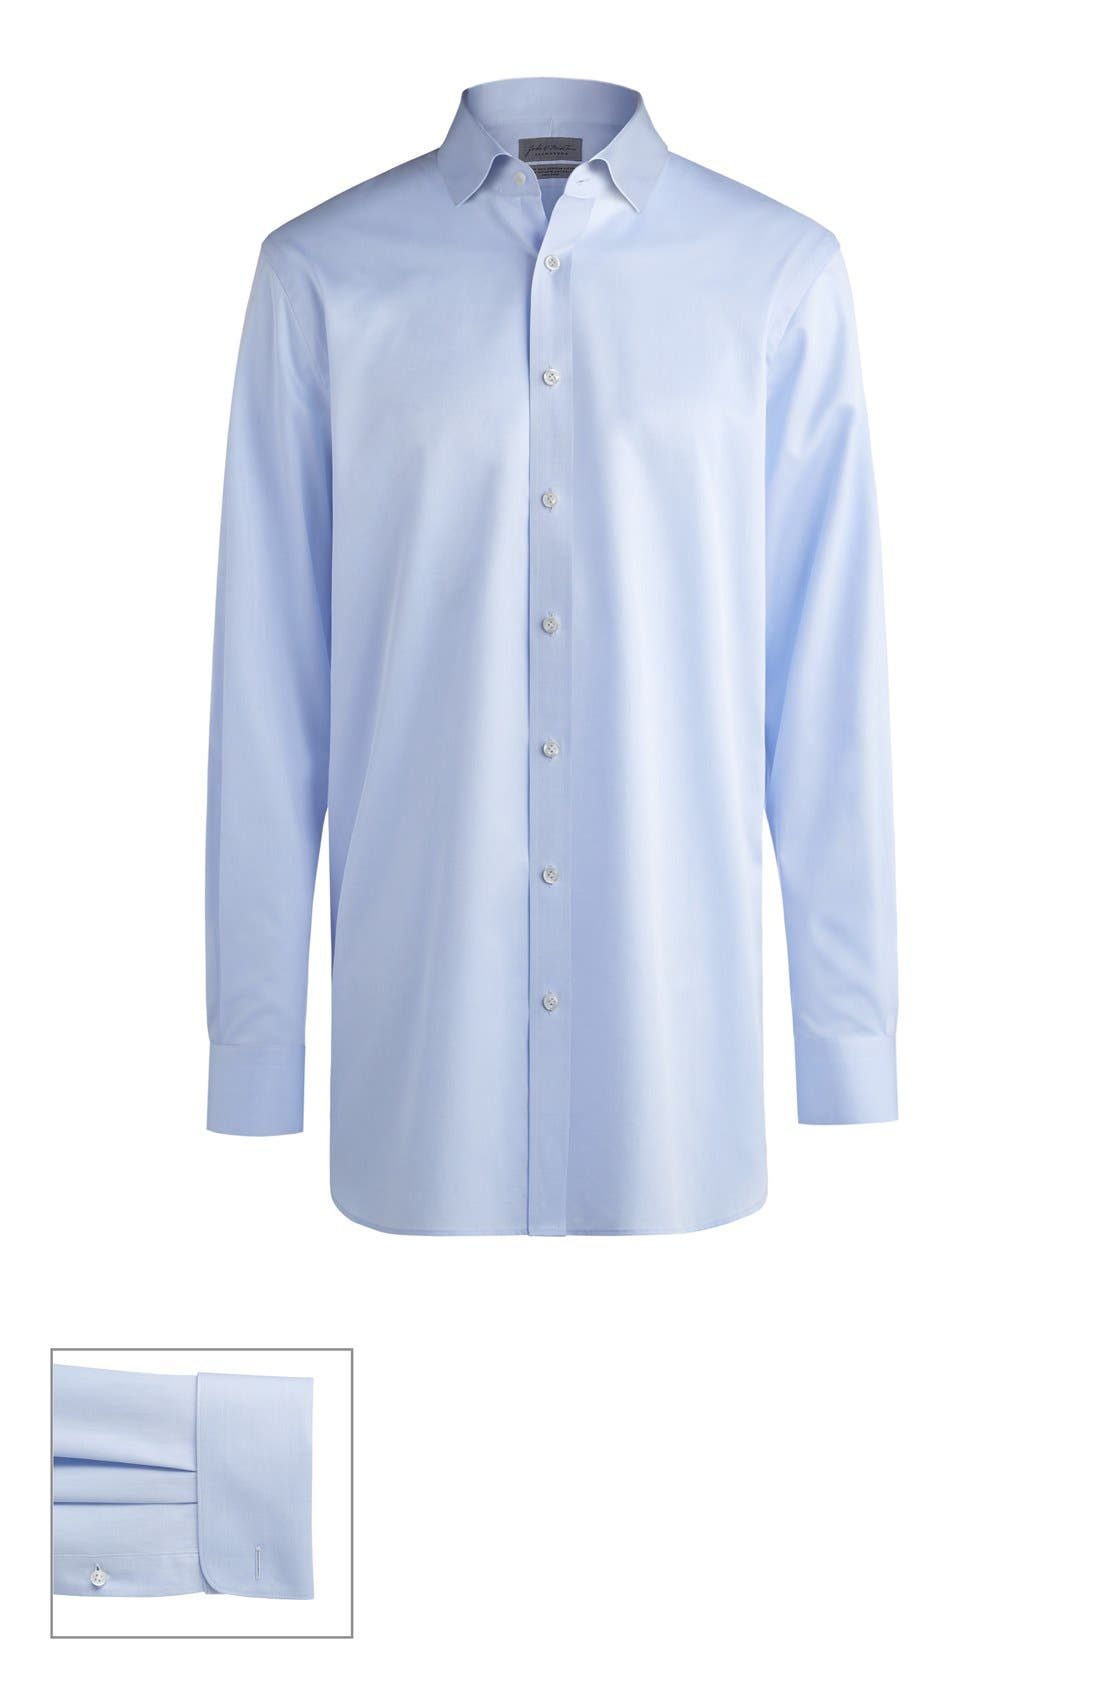 Made to Measure Extra Trim Fit Short Spread Collar Solid Dress Shirt,                         Main,                         color, BLUE TWILL